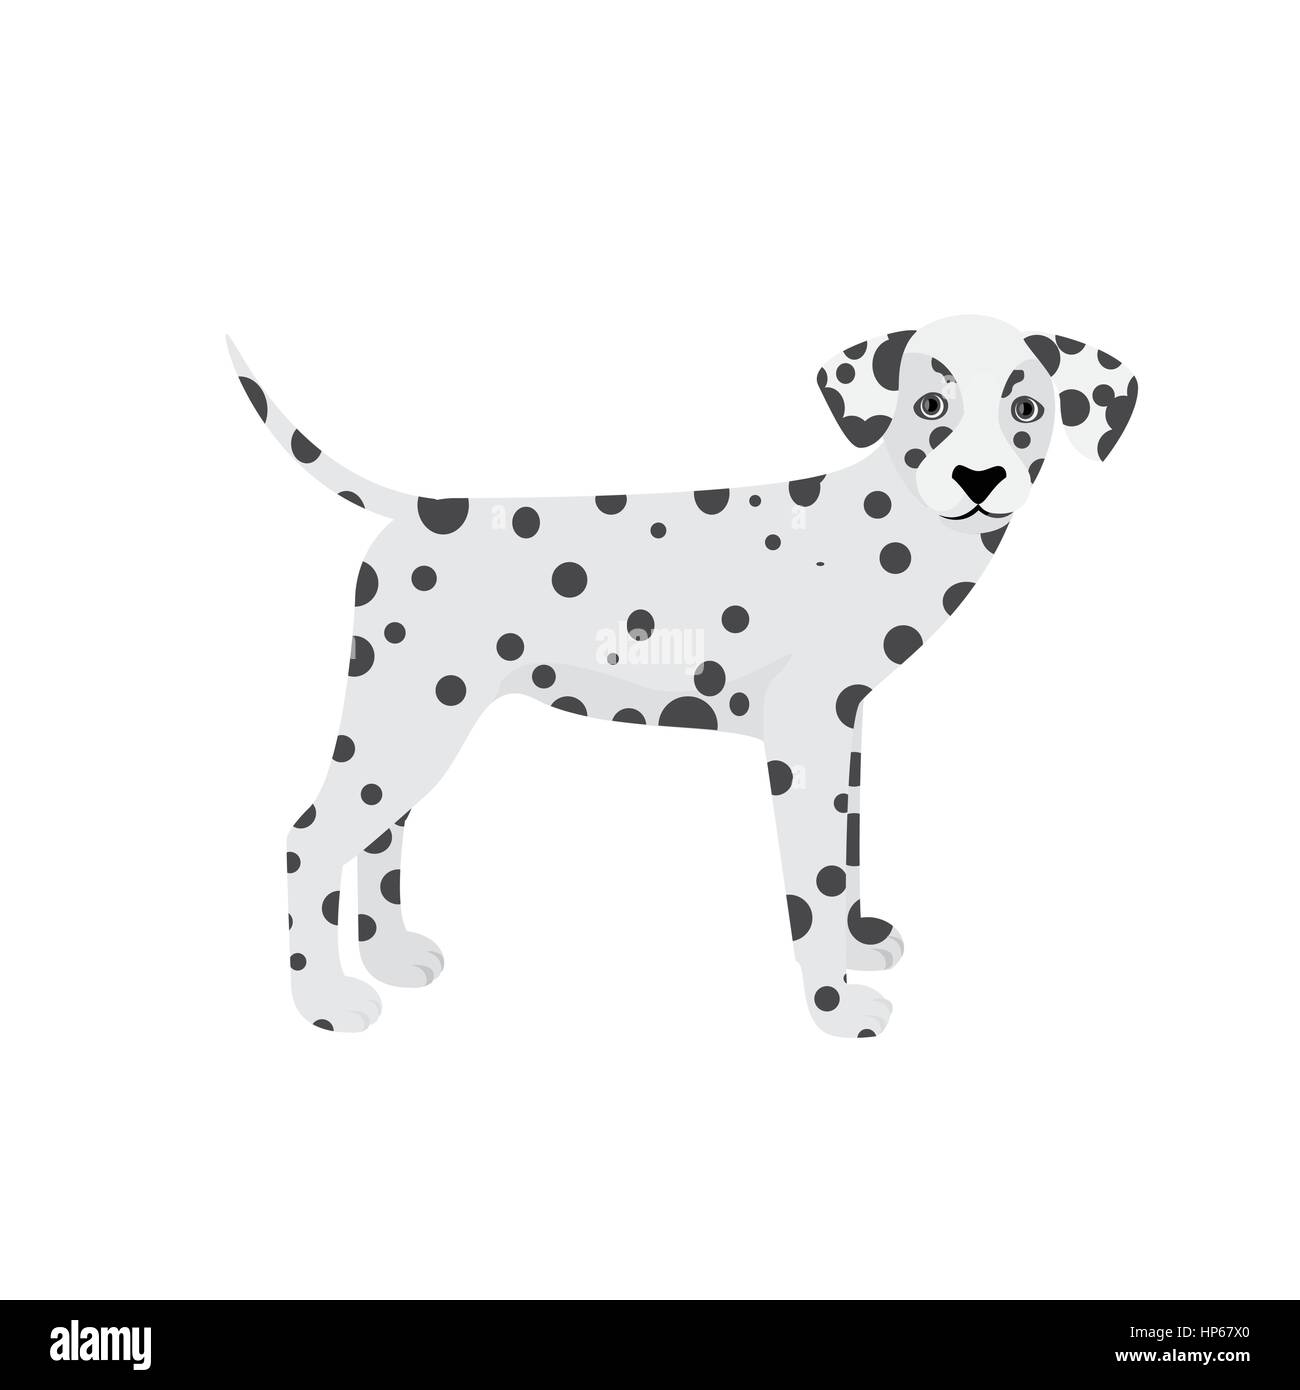 Dalmatian dog vector isolated on a white background - Stock Vector